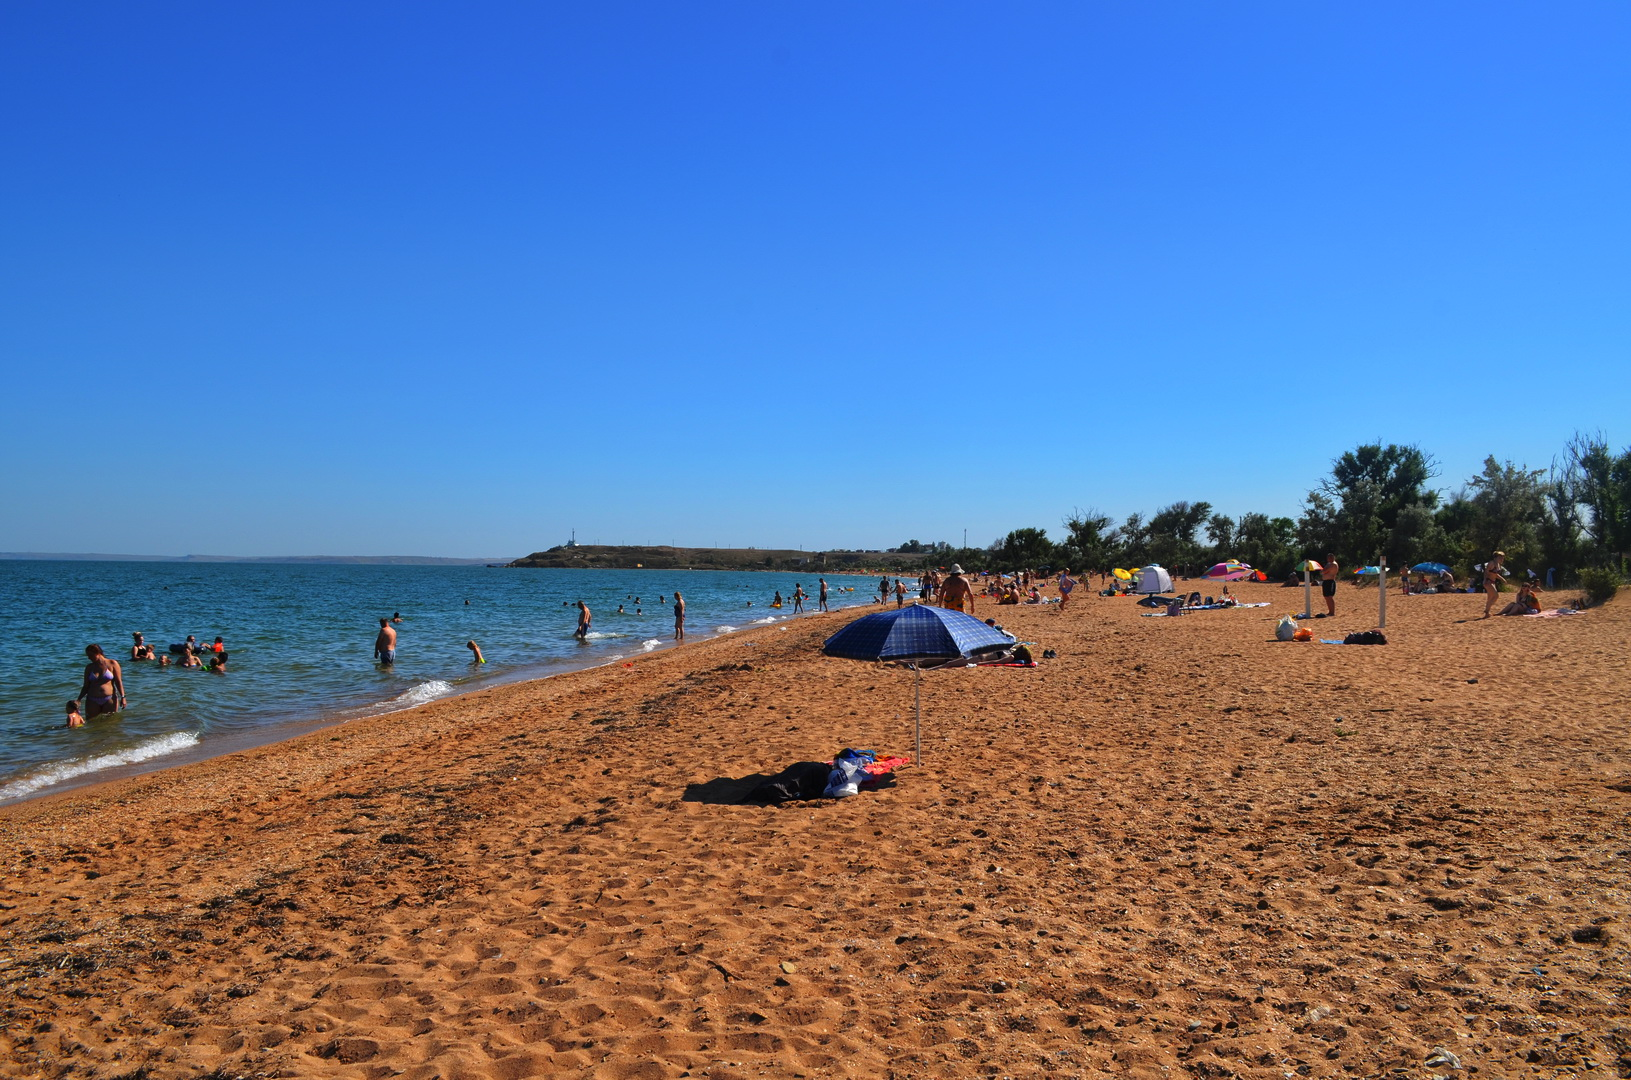 kerch beach 28 06 2020 12